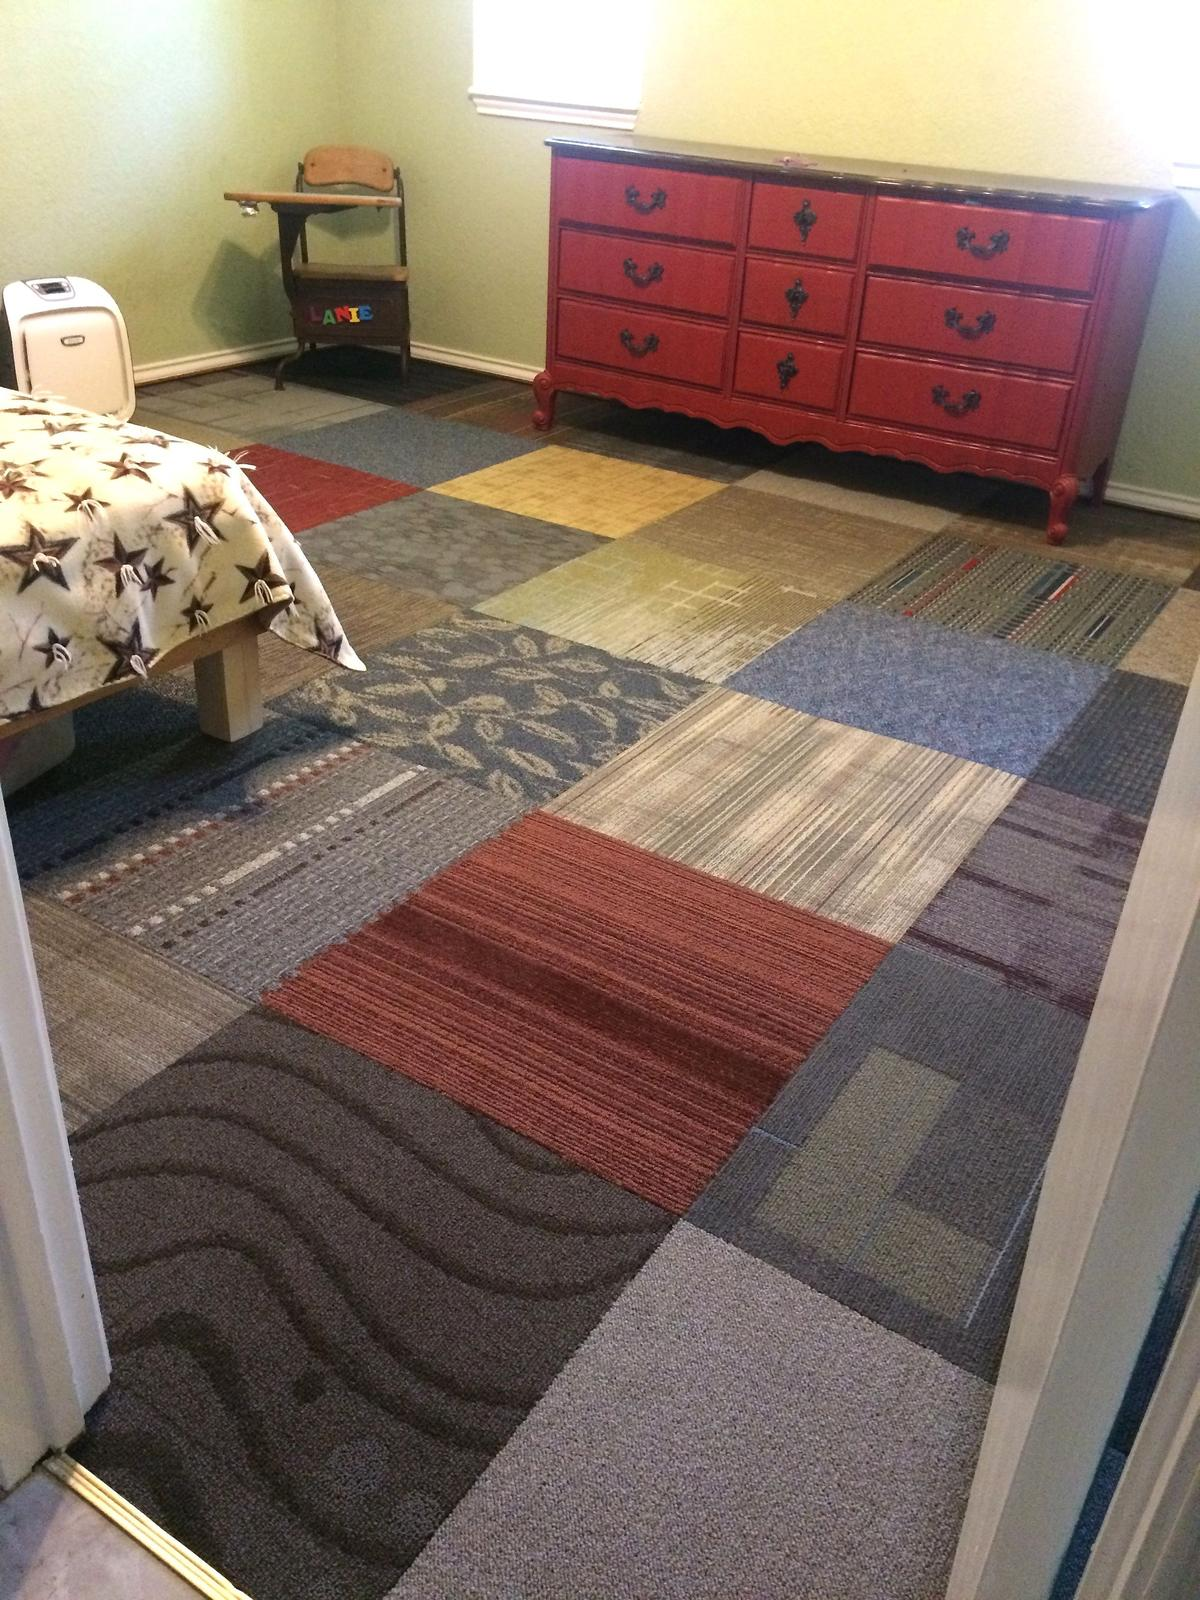 Our 12 X 12 Room Cost Around $100 To Carpet. Hello Savings! Sorry  Wall To Wall, Weu0027re Breaking Up.